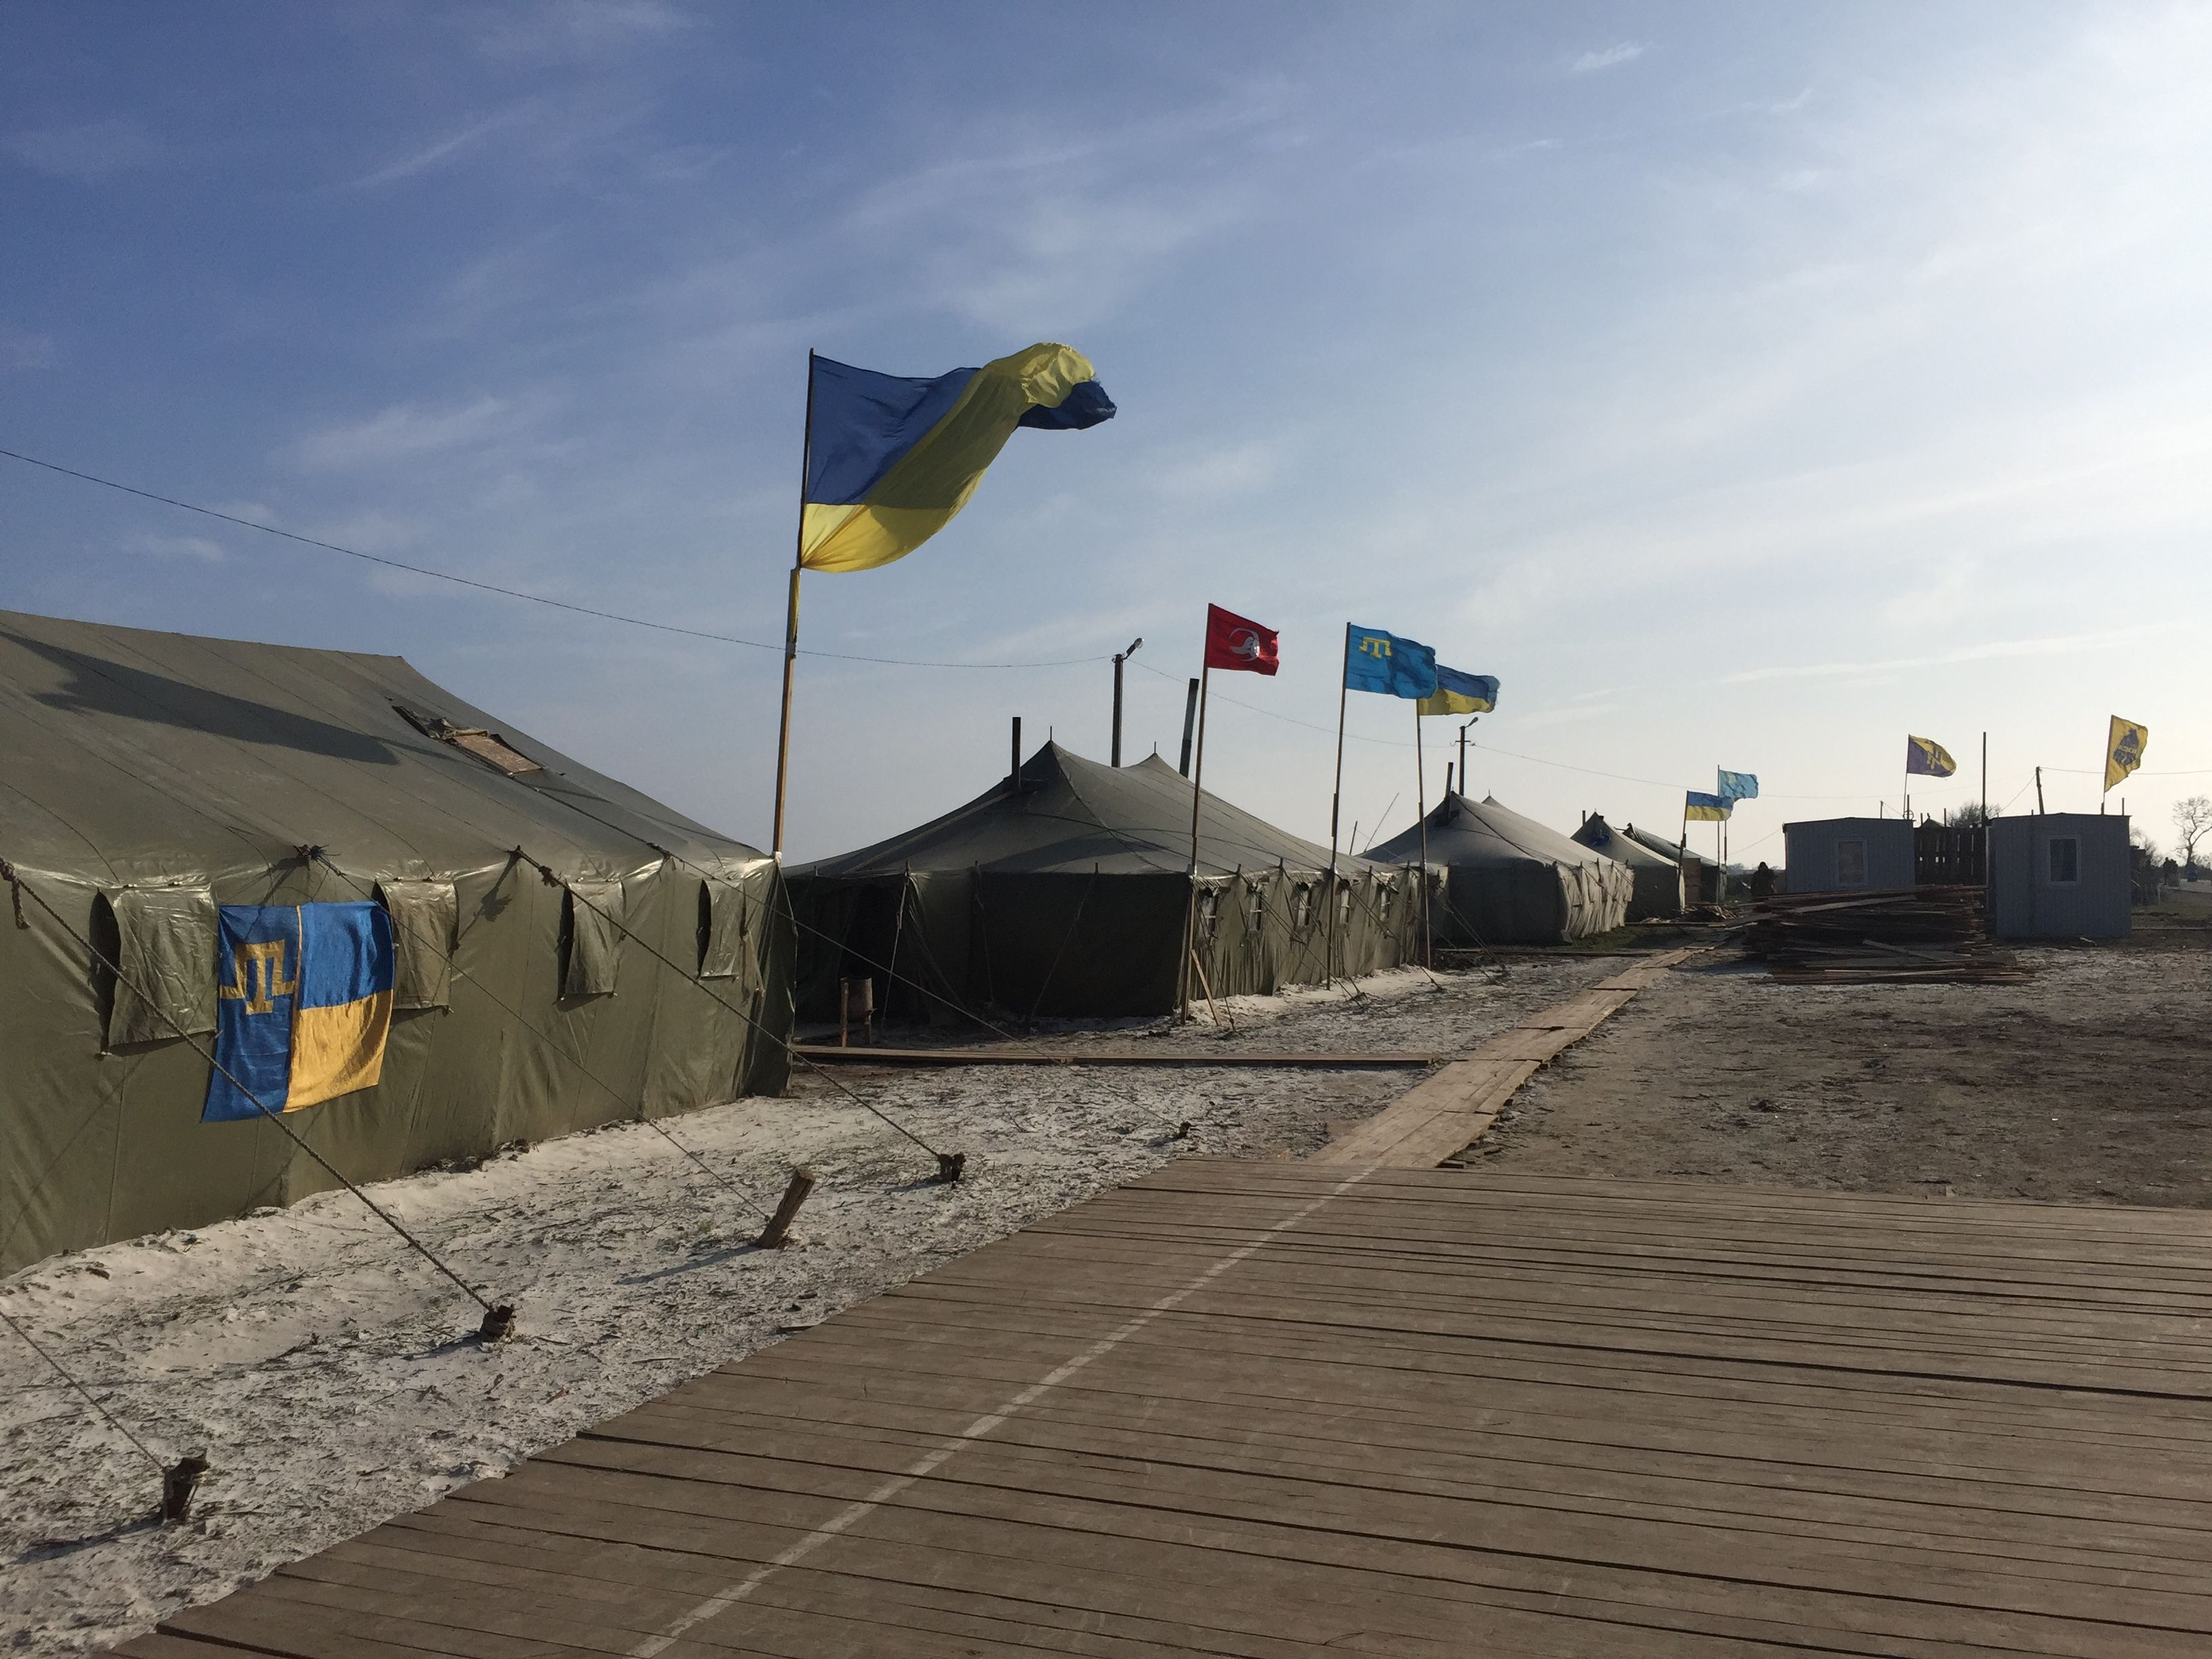 Tatars have organized a battalion and set up a camp near the new, unrecognized border between Ukraine and Russian-ruled Crimea. (L. Ramirez/VOA)